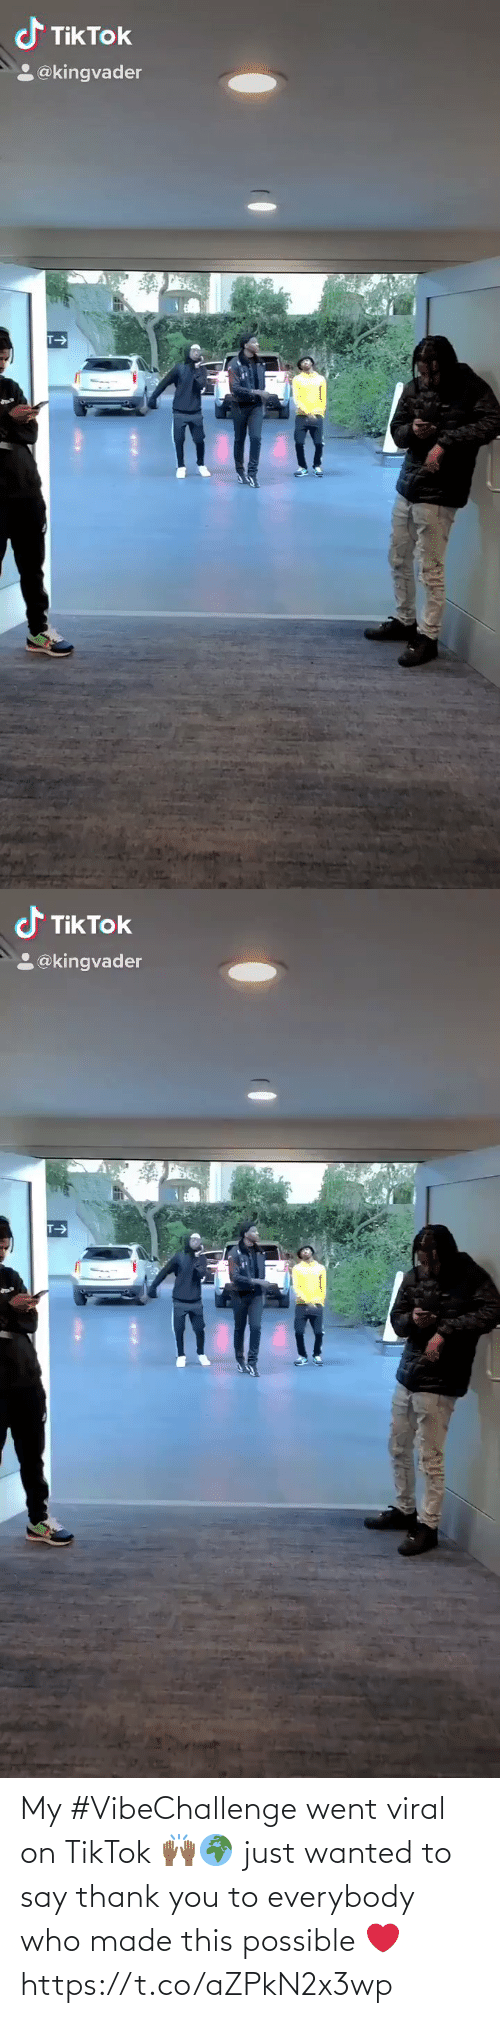 Say Thank: My #VibeChallenge went viral on TikTok 🙌🏾🌍 just wanted to say thank you to everybody who made this possible ❤️ https://t.co/aZPkN2x3wp